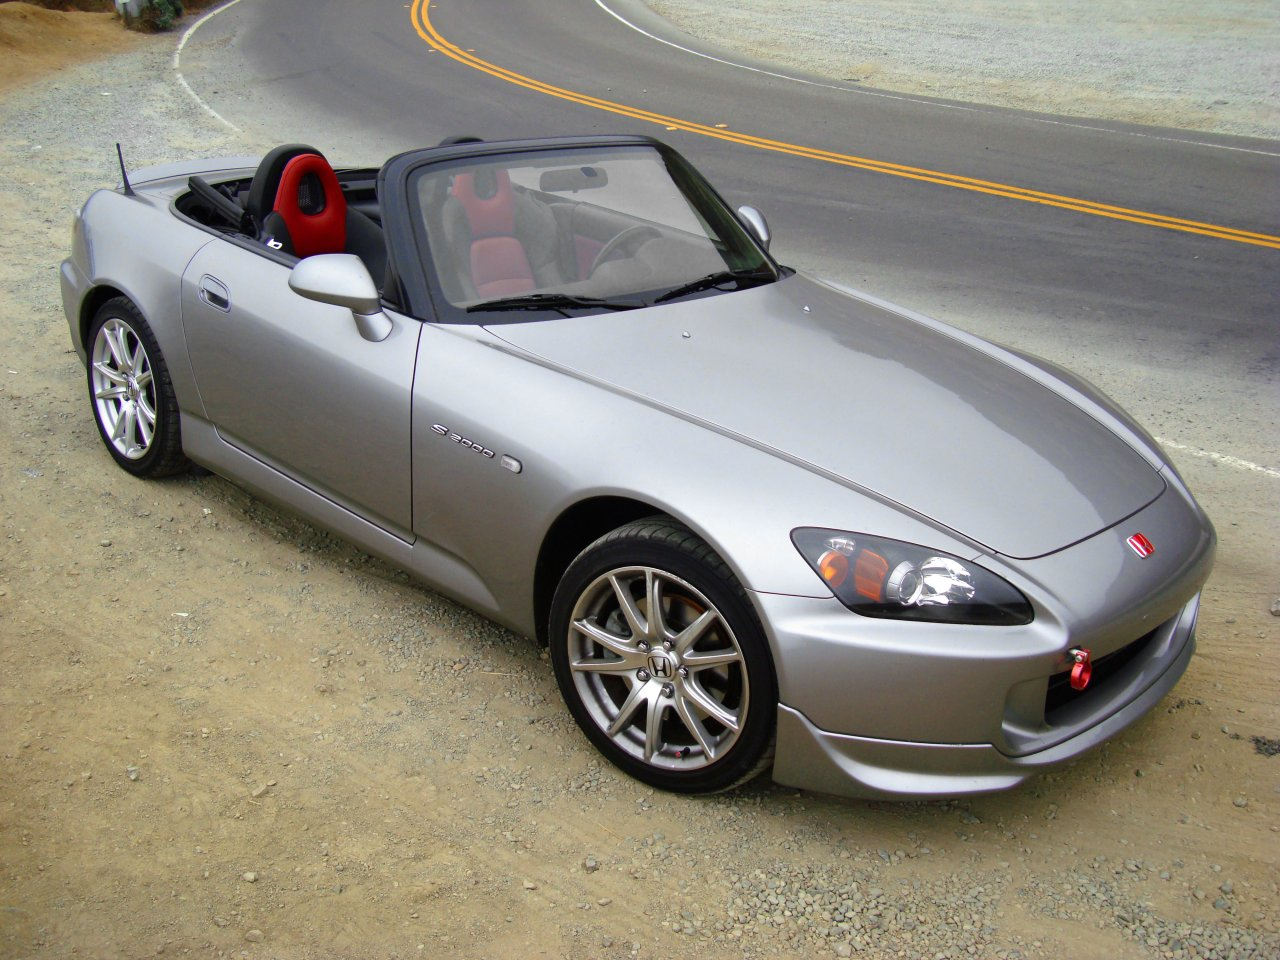 Honda S2000 Specs >> Honda S2000 Ap2 Laptimes Specs Performance Data